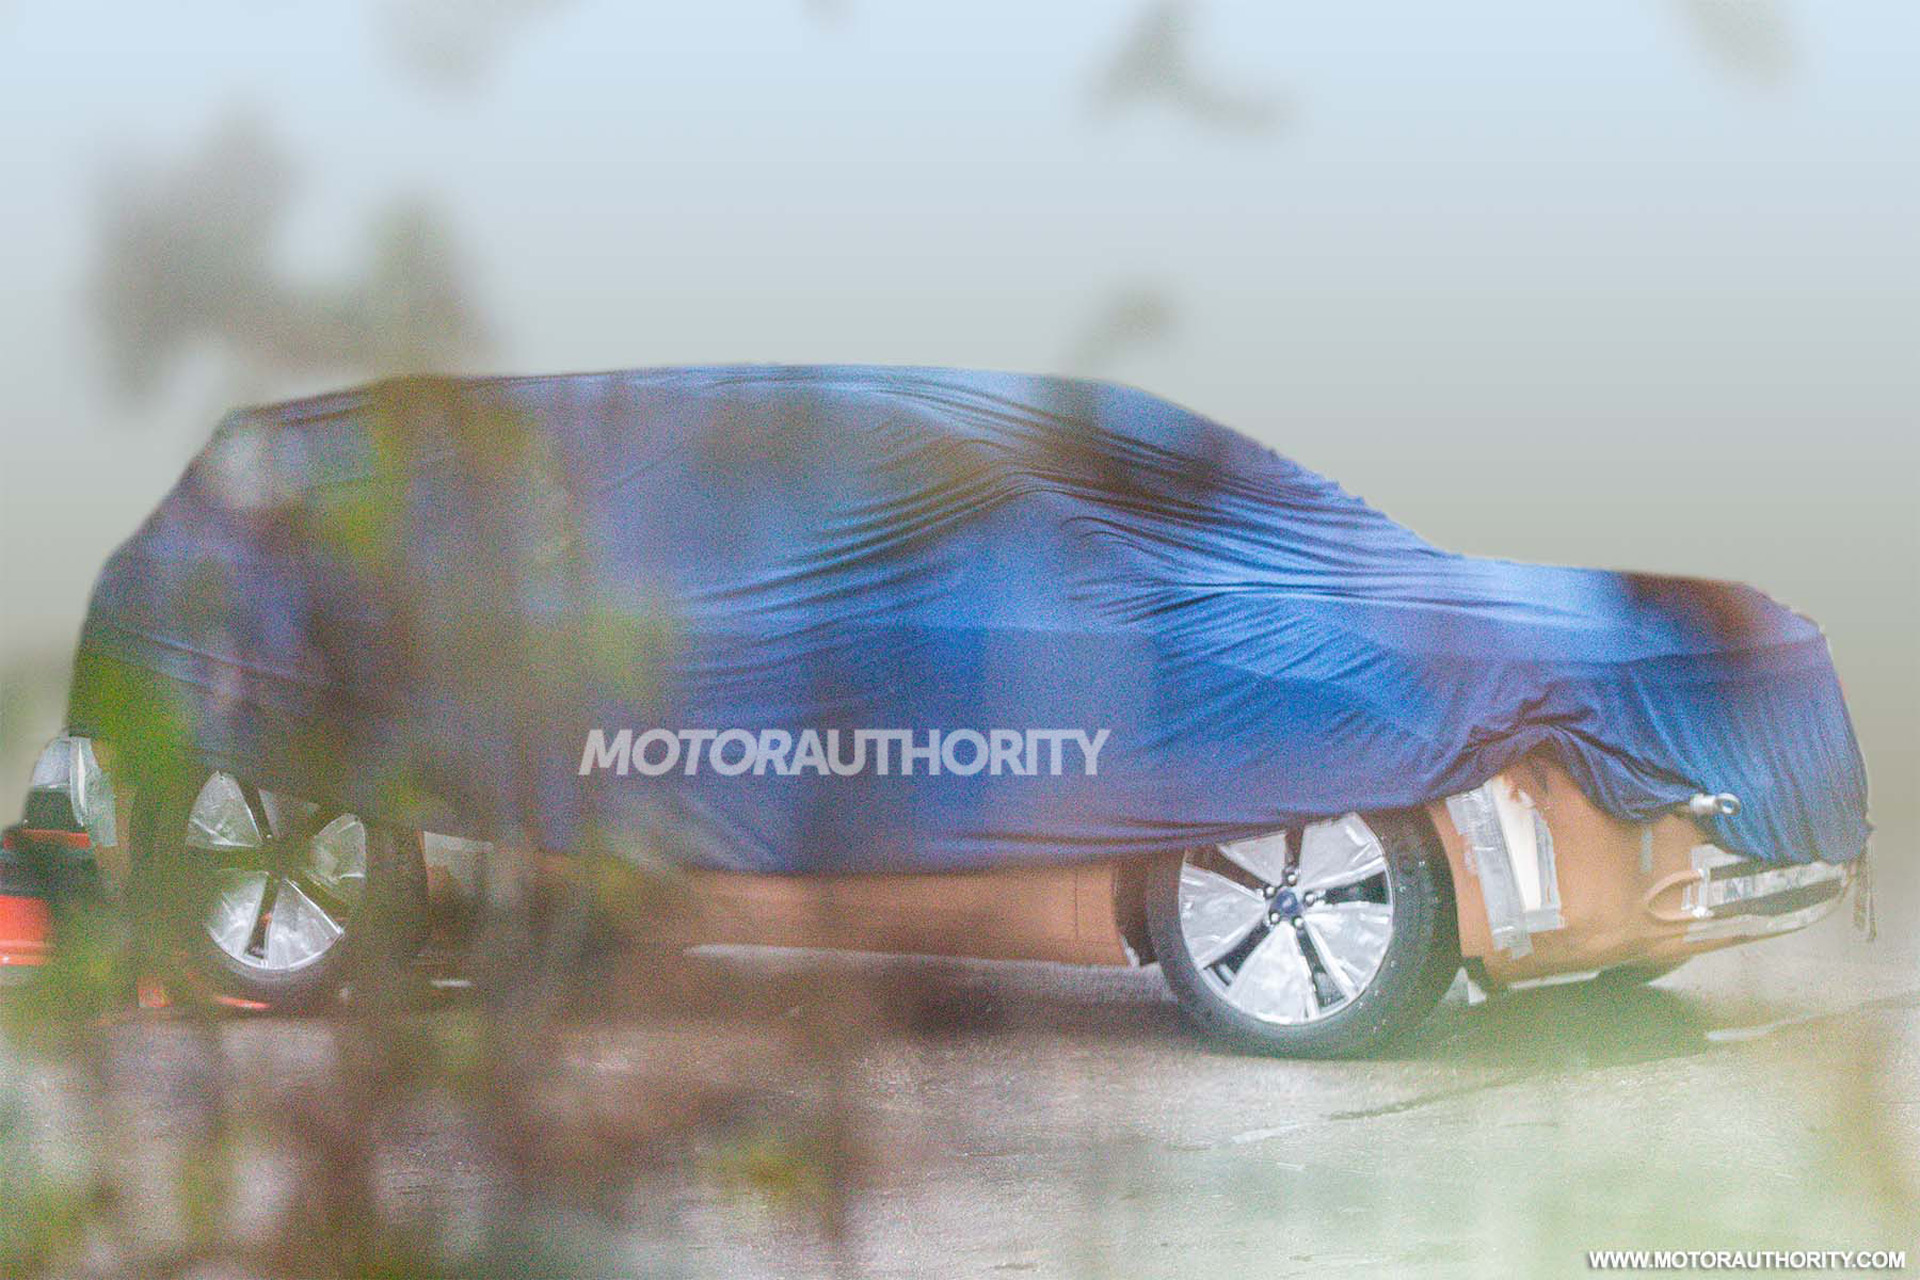 2023 Ford MEB-based electric crossover spy shots: Ford's twin to the VW ID.4 takes shape